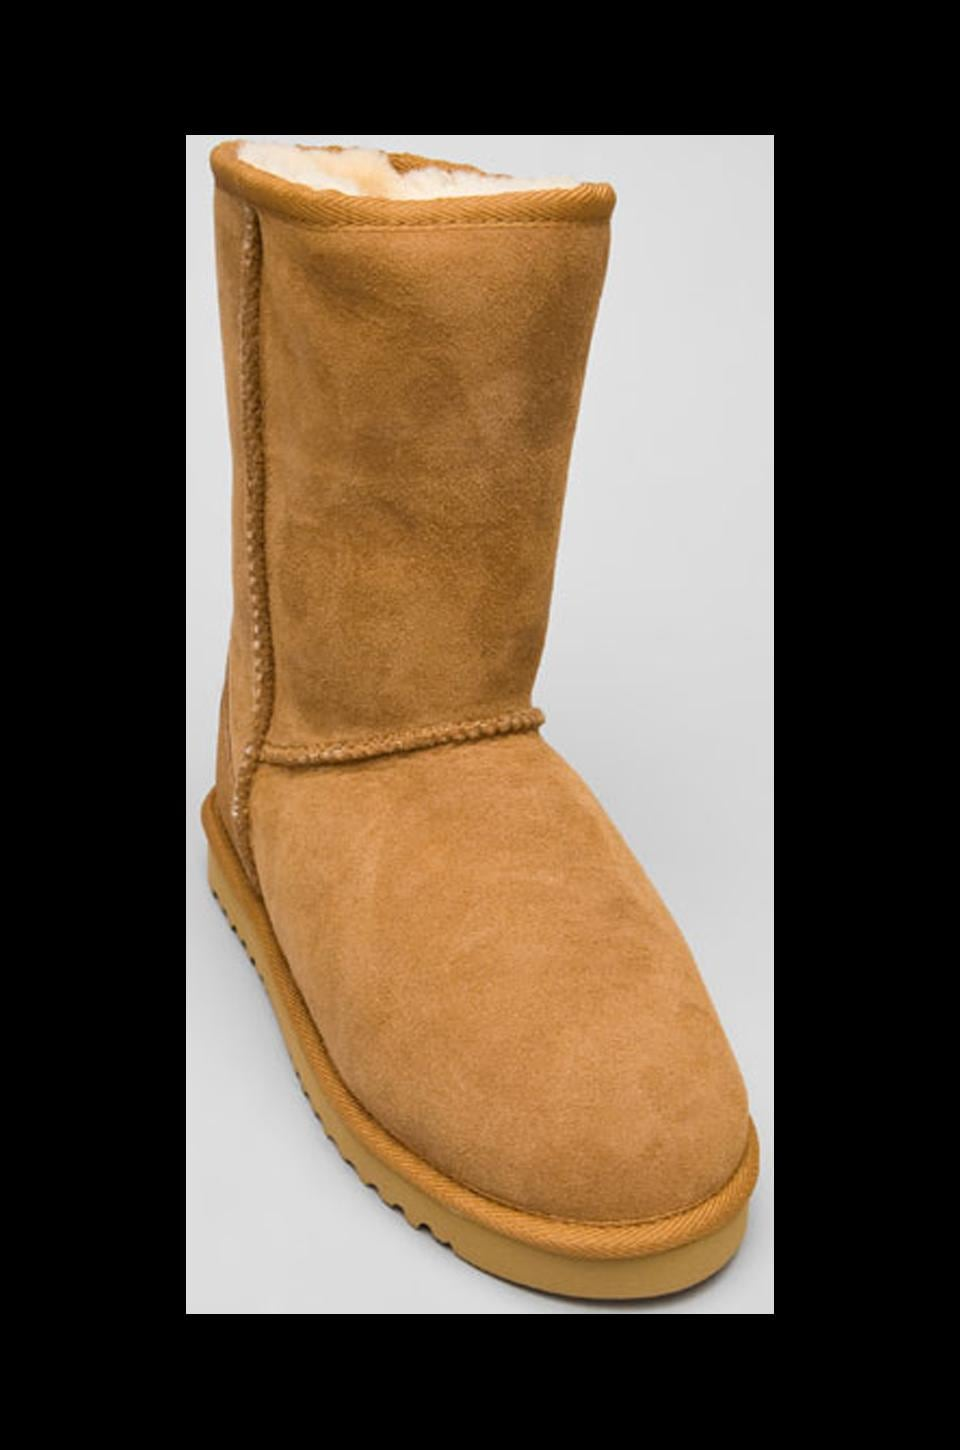 Australia Luxe Collective Classic Cosy Short Boot in Chestnut